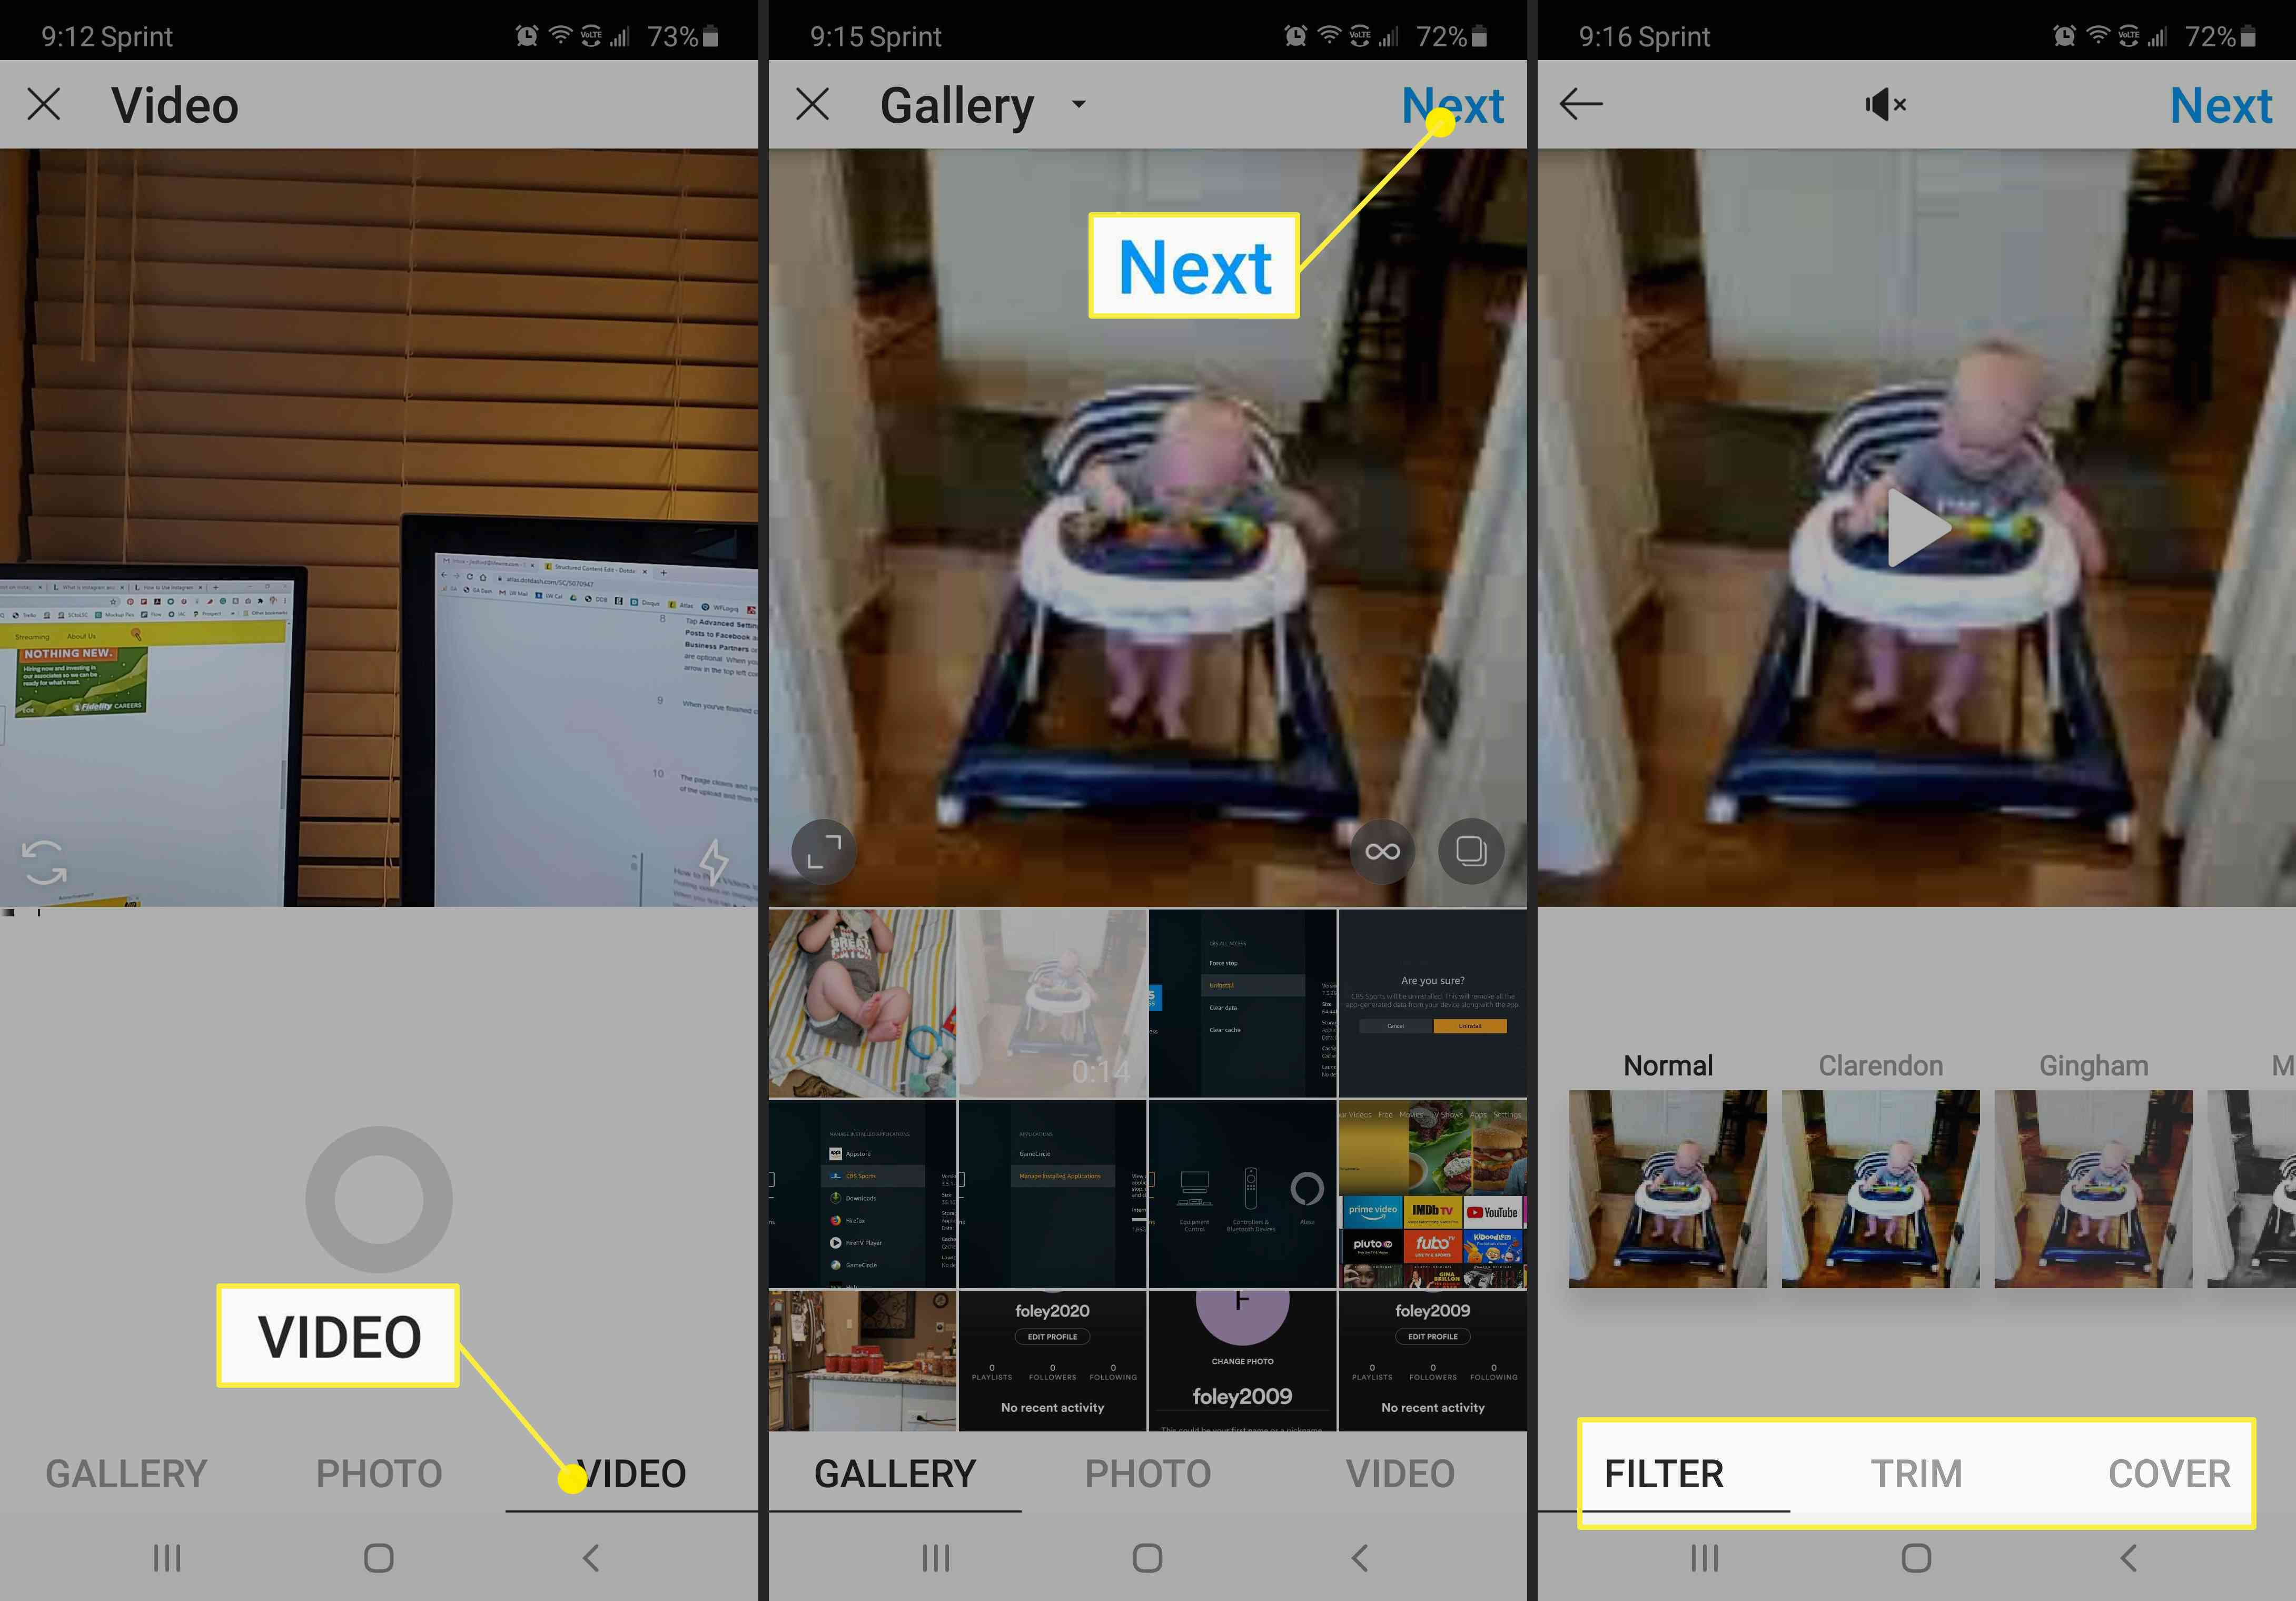 Screenshots of how to post a video to Instagram.